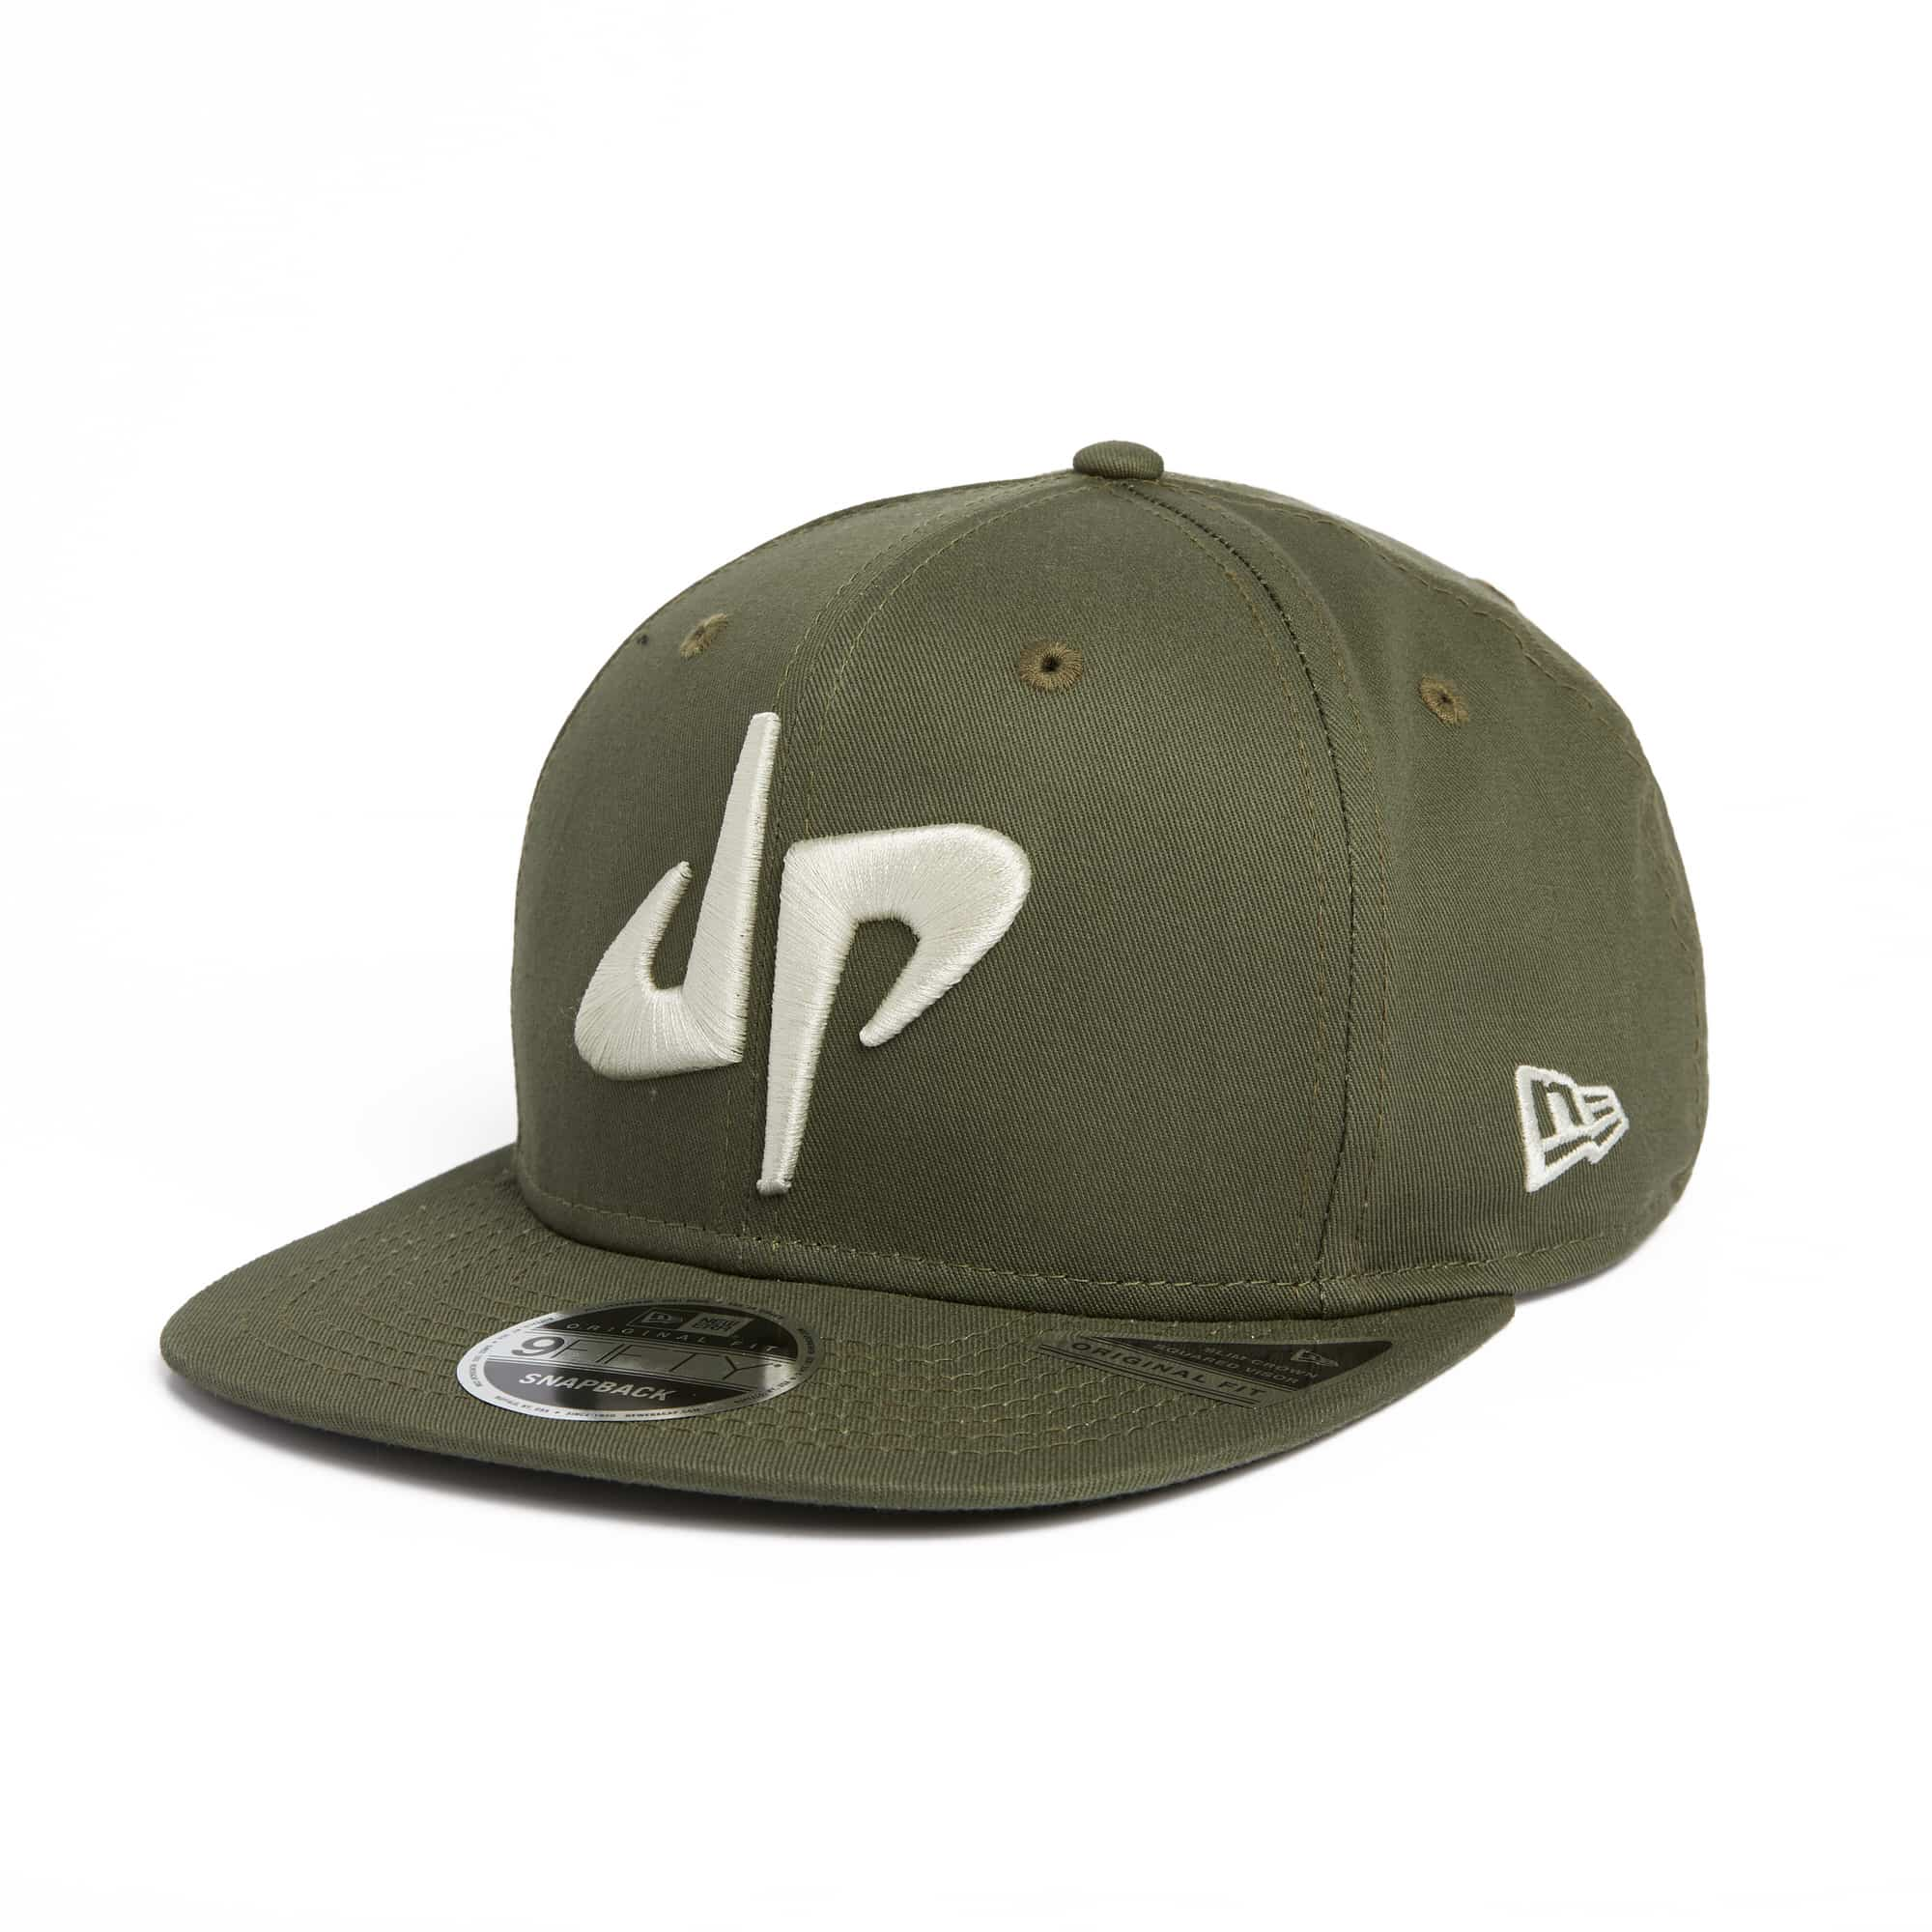 DP x New Era 9Fifty Snapback // OD Green